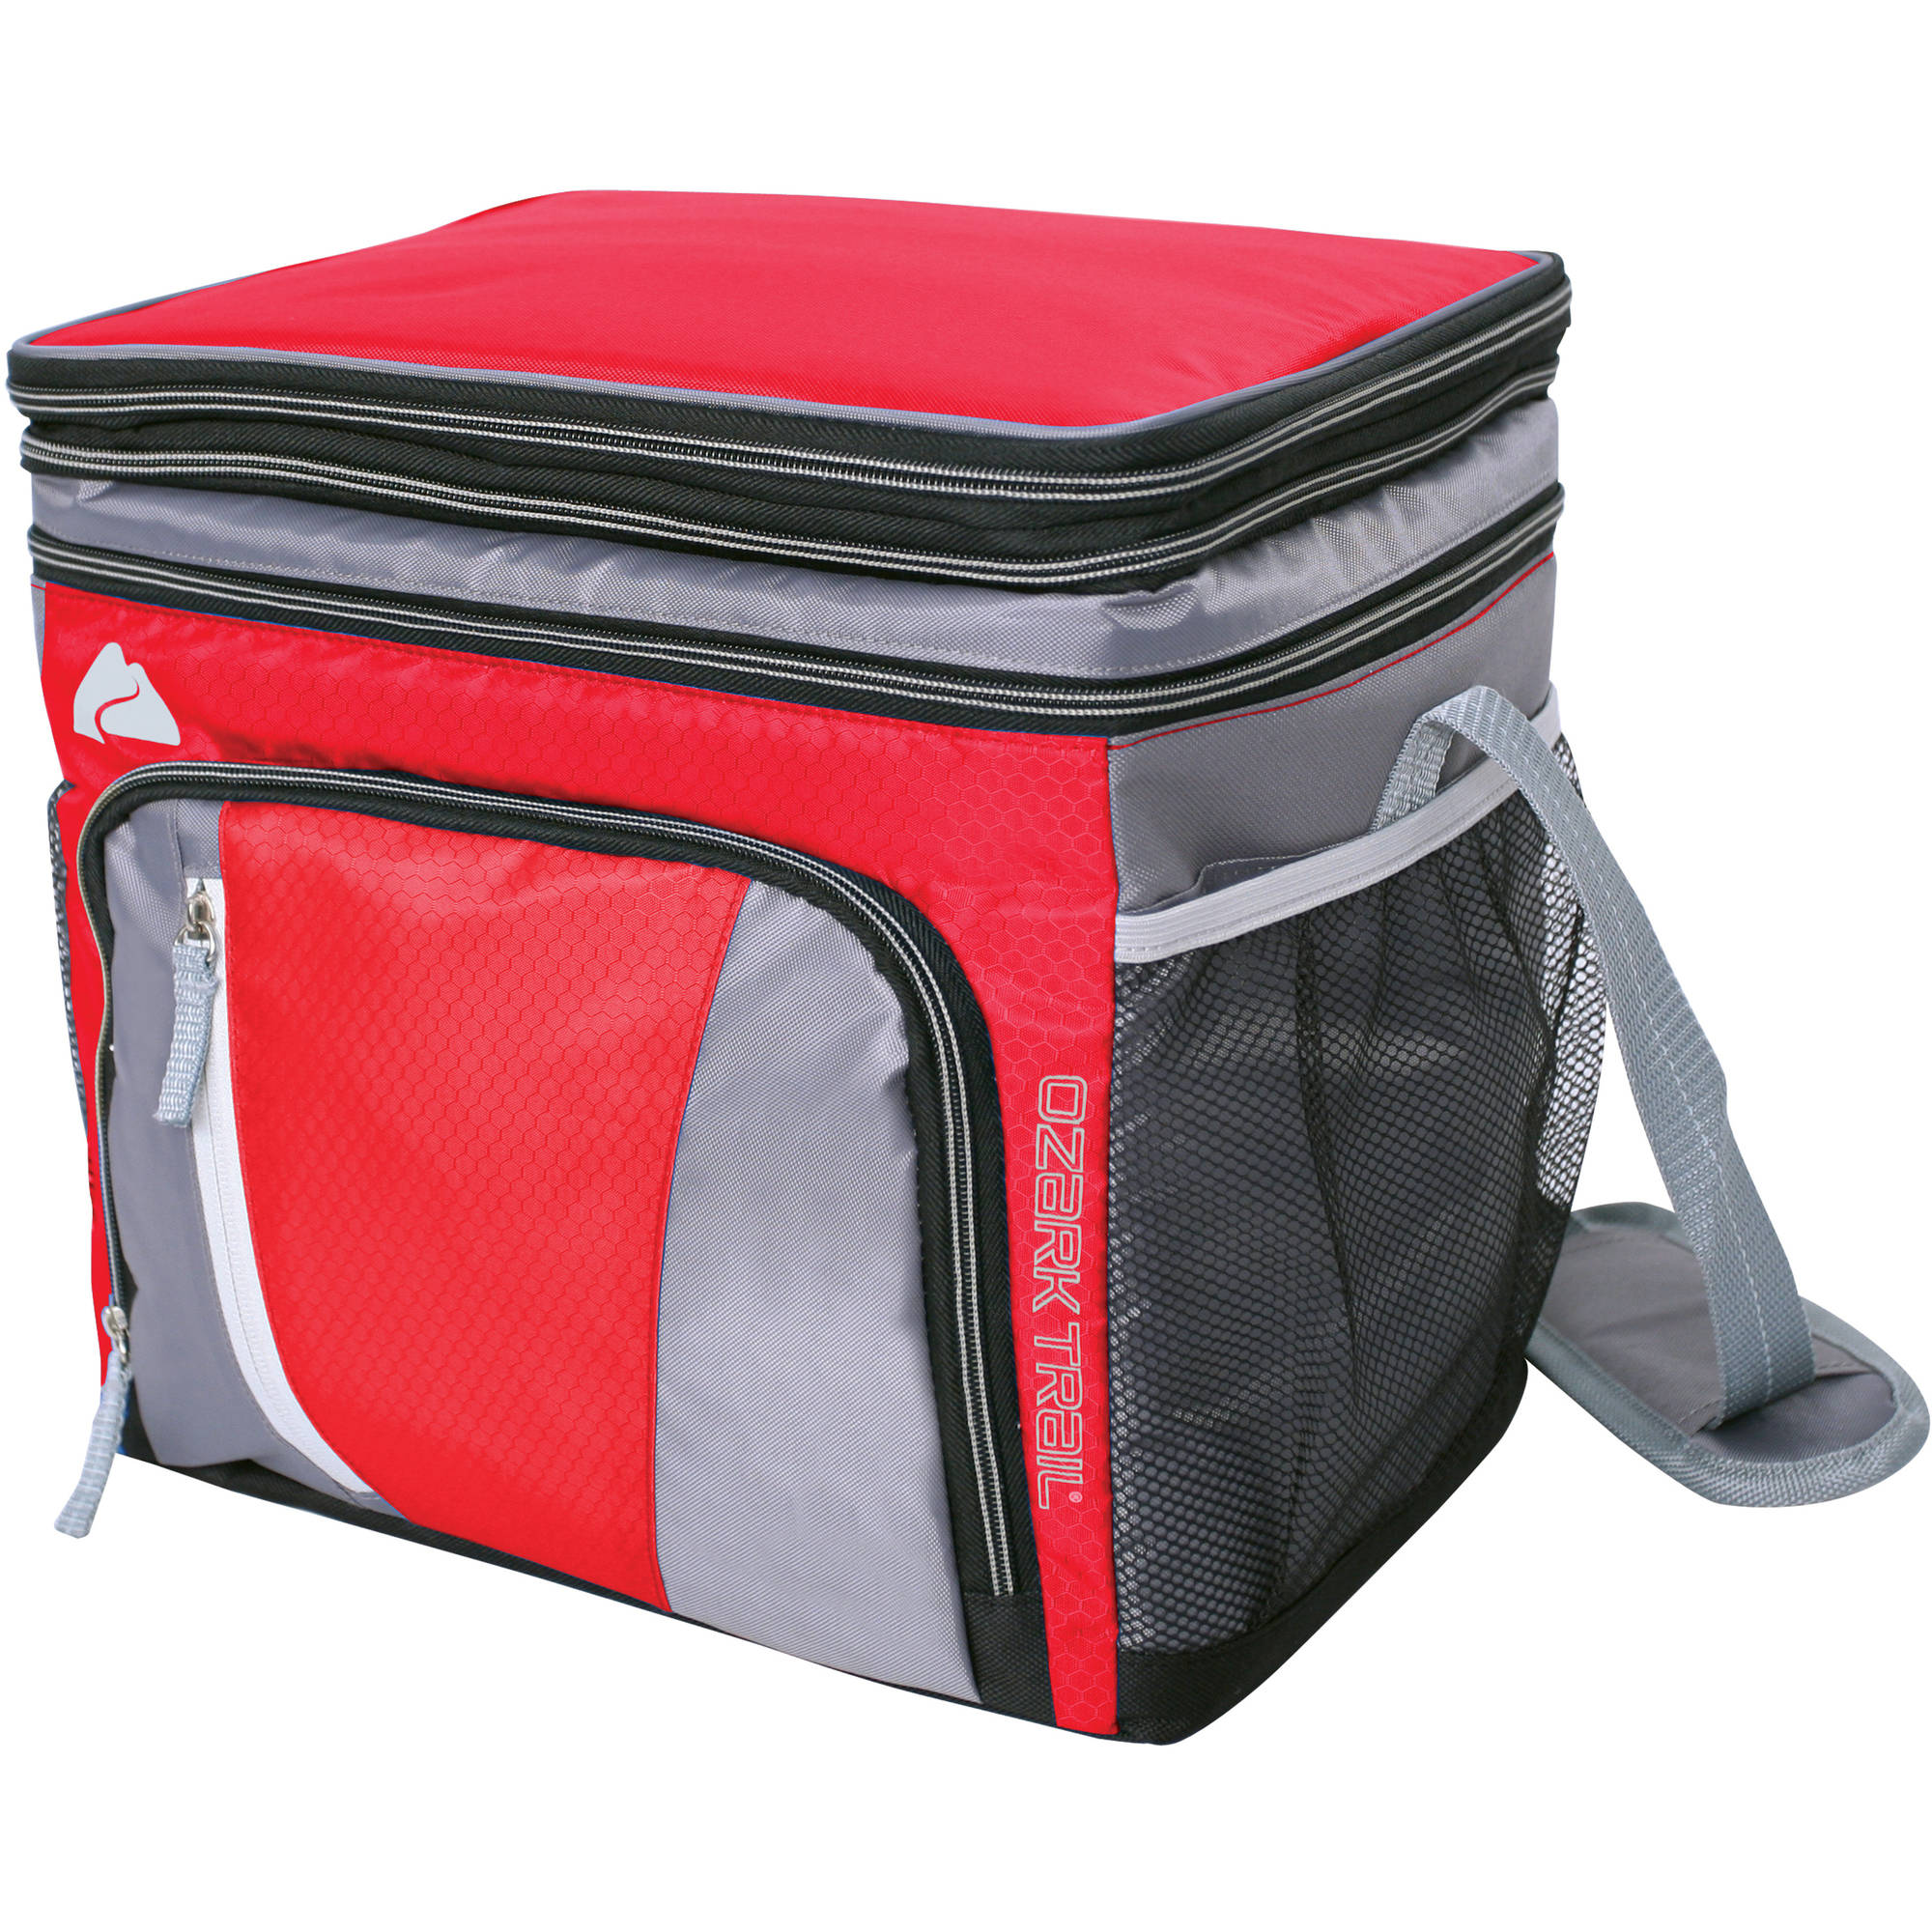 Ozark Trail 24-Can Cooler with Removable Hardliner, Red